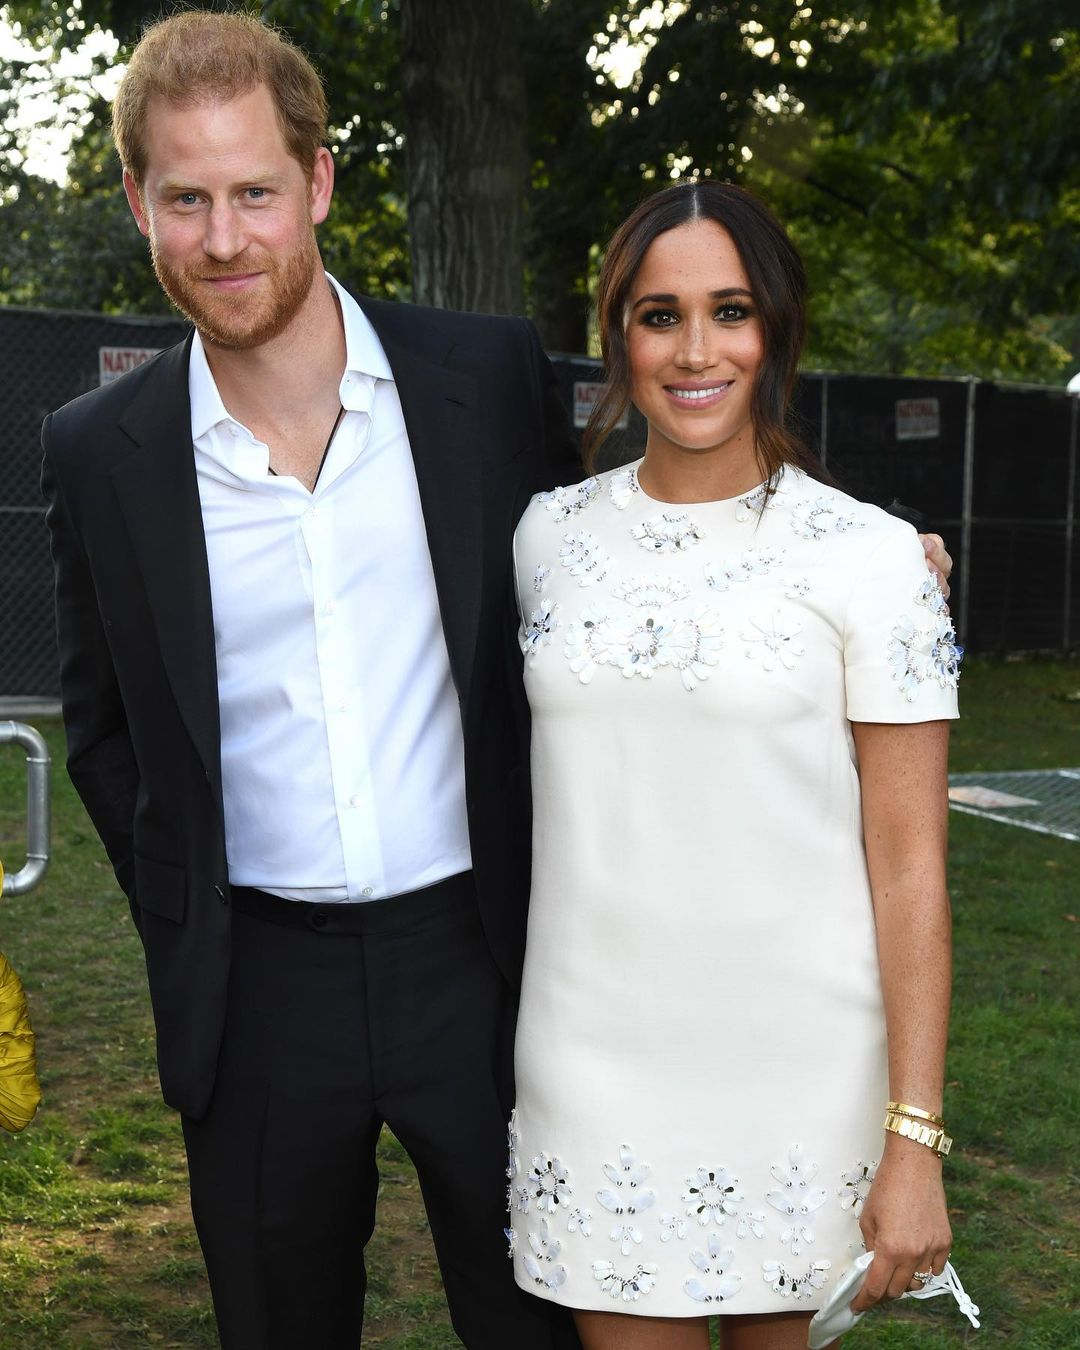 The latest photos of Meghan Markle and Prince Harry provoked rumors about the third pregnancy of the Duchess